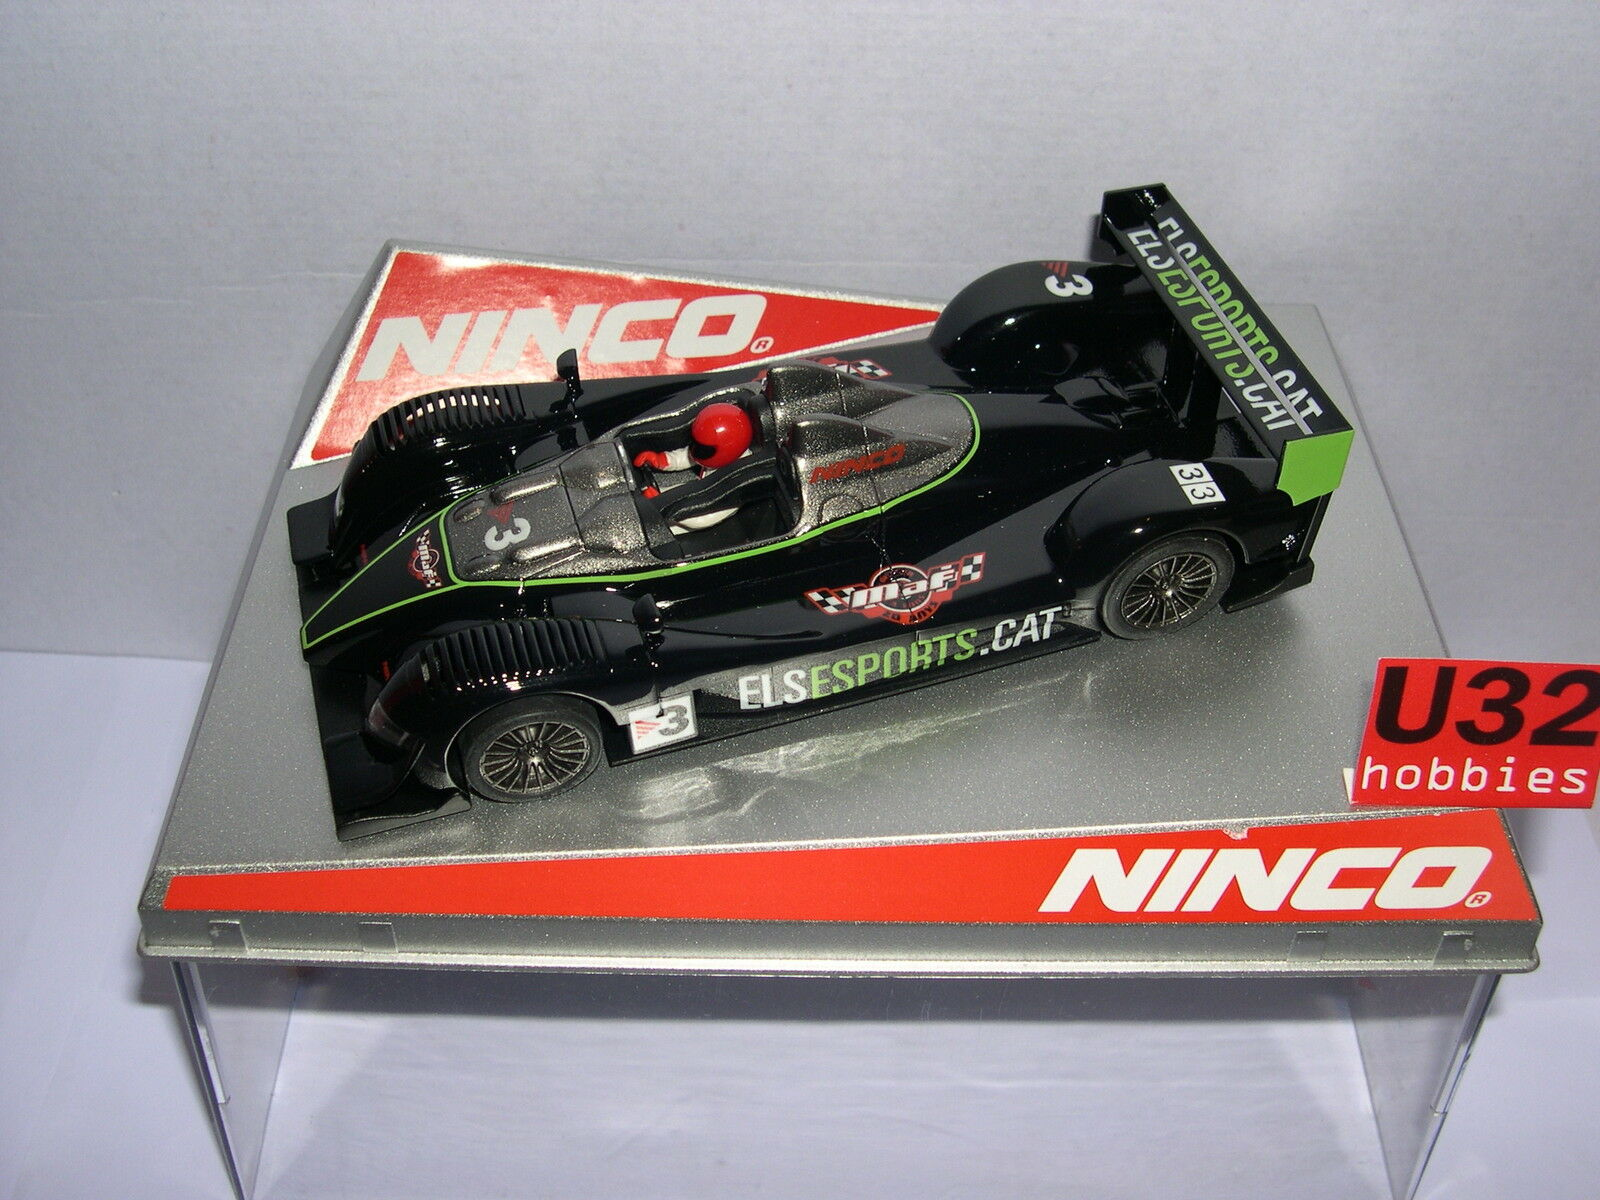 Qq 50539 NINCO ACURA LMP2 TV3 MaF ELSESPORTS.CAT SPECIAL EDITION